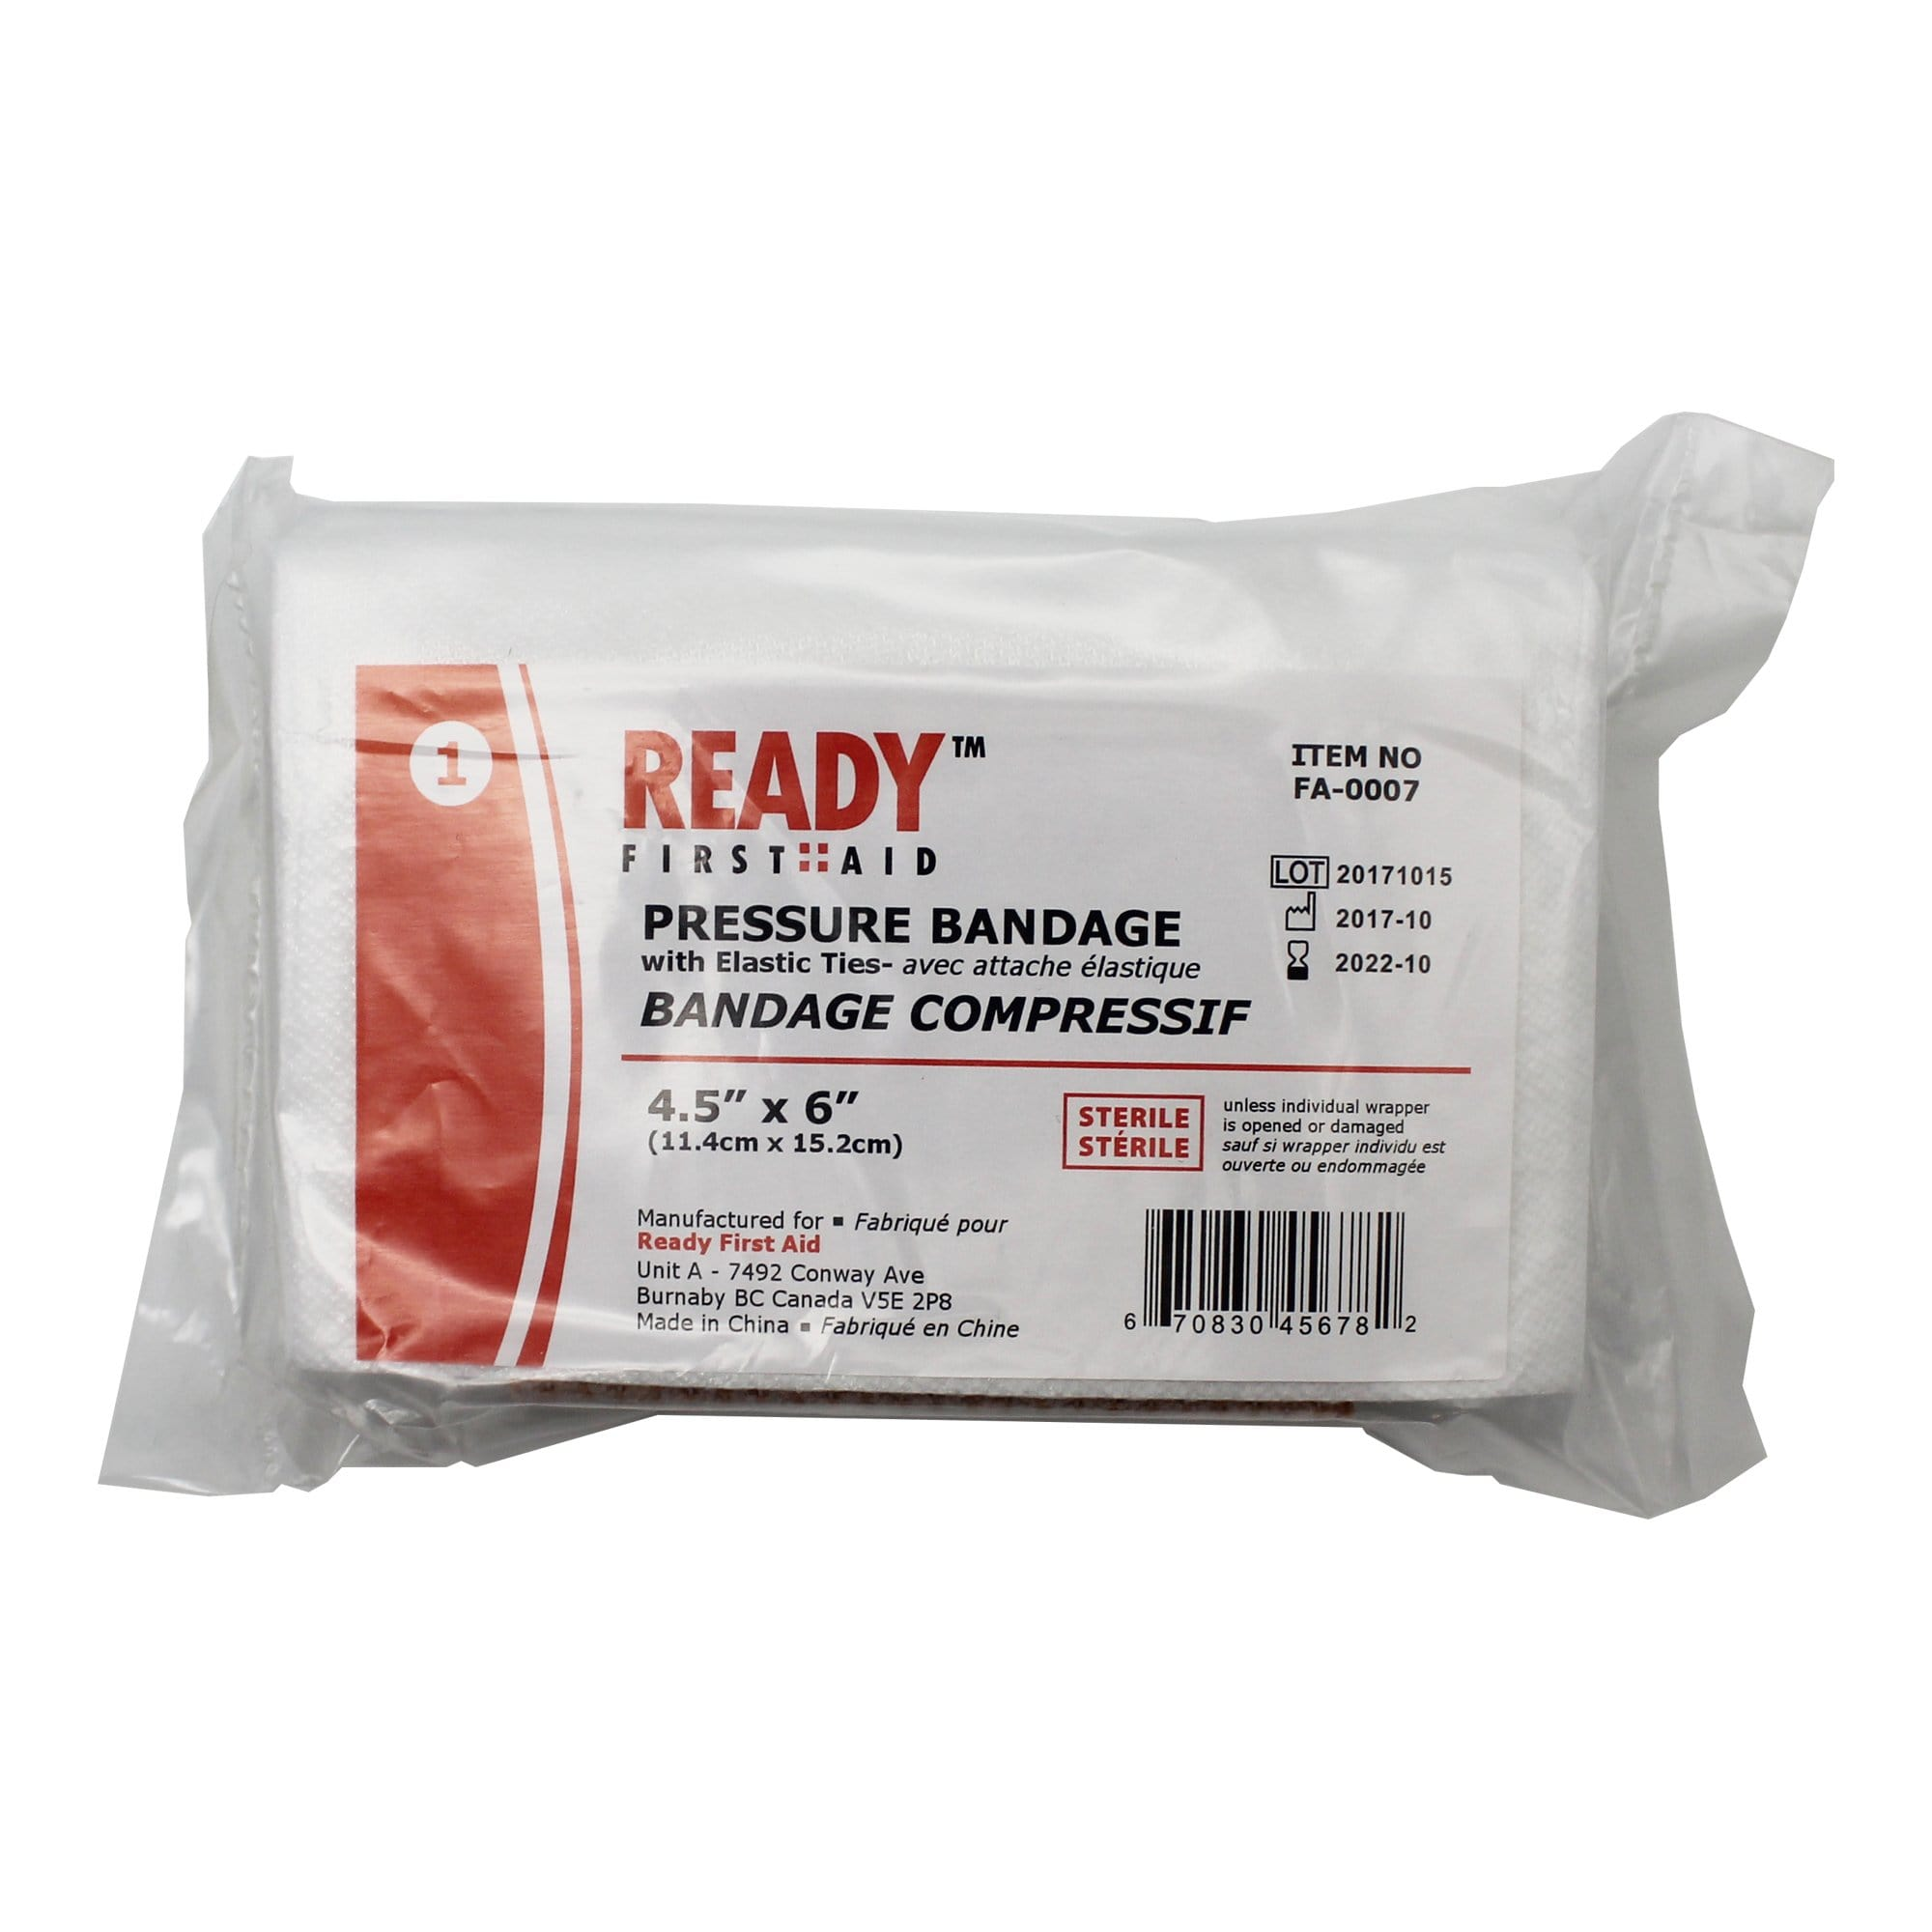 Pressure Bandage w/Elastic Ties 11.4cm x 14.3cm (4.5 inches x 6 inches) - Ready First Aid